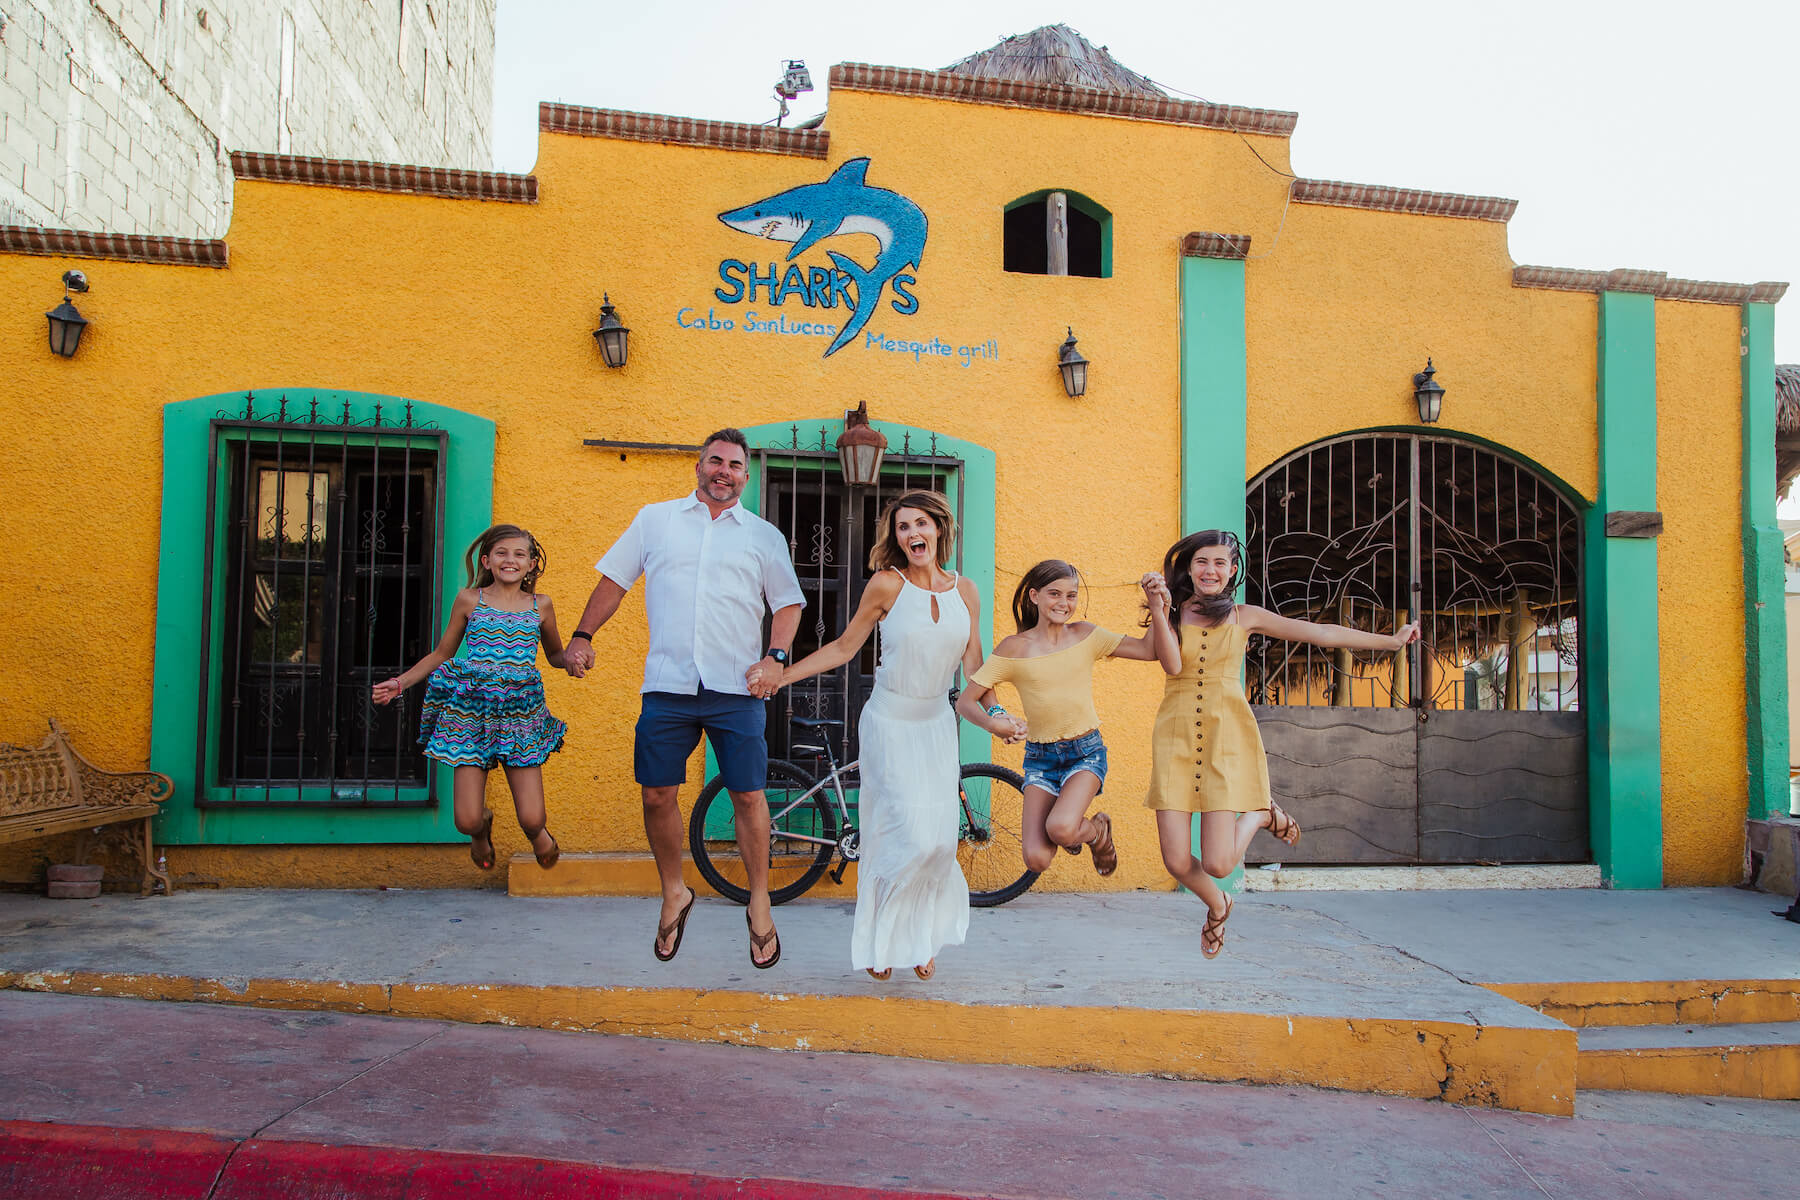 family of five holding hands and jumping in front of a colourful building in Cabo San Lucas, Mexico